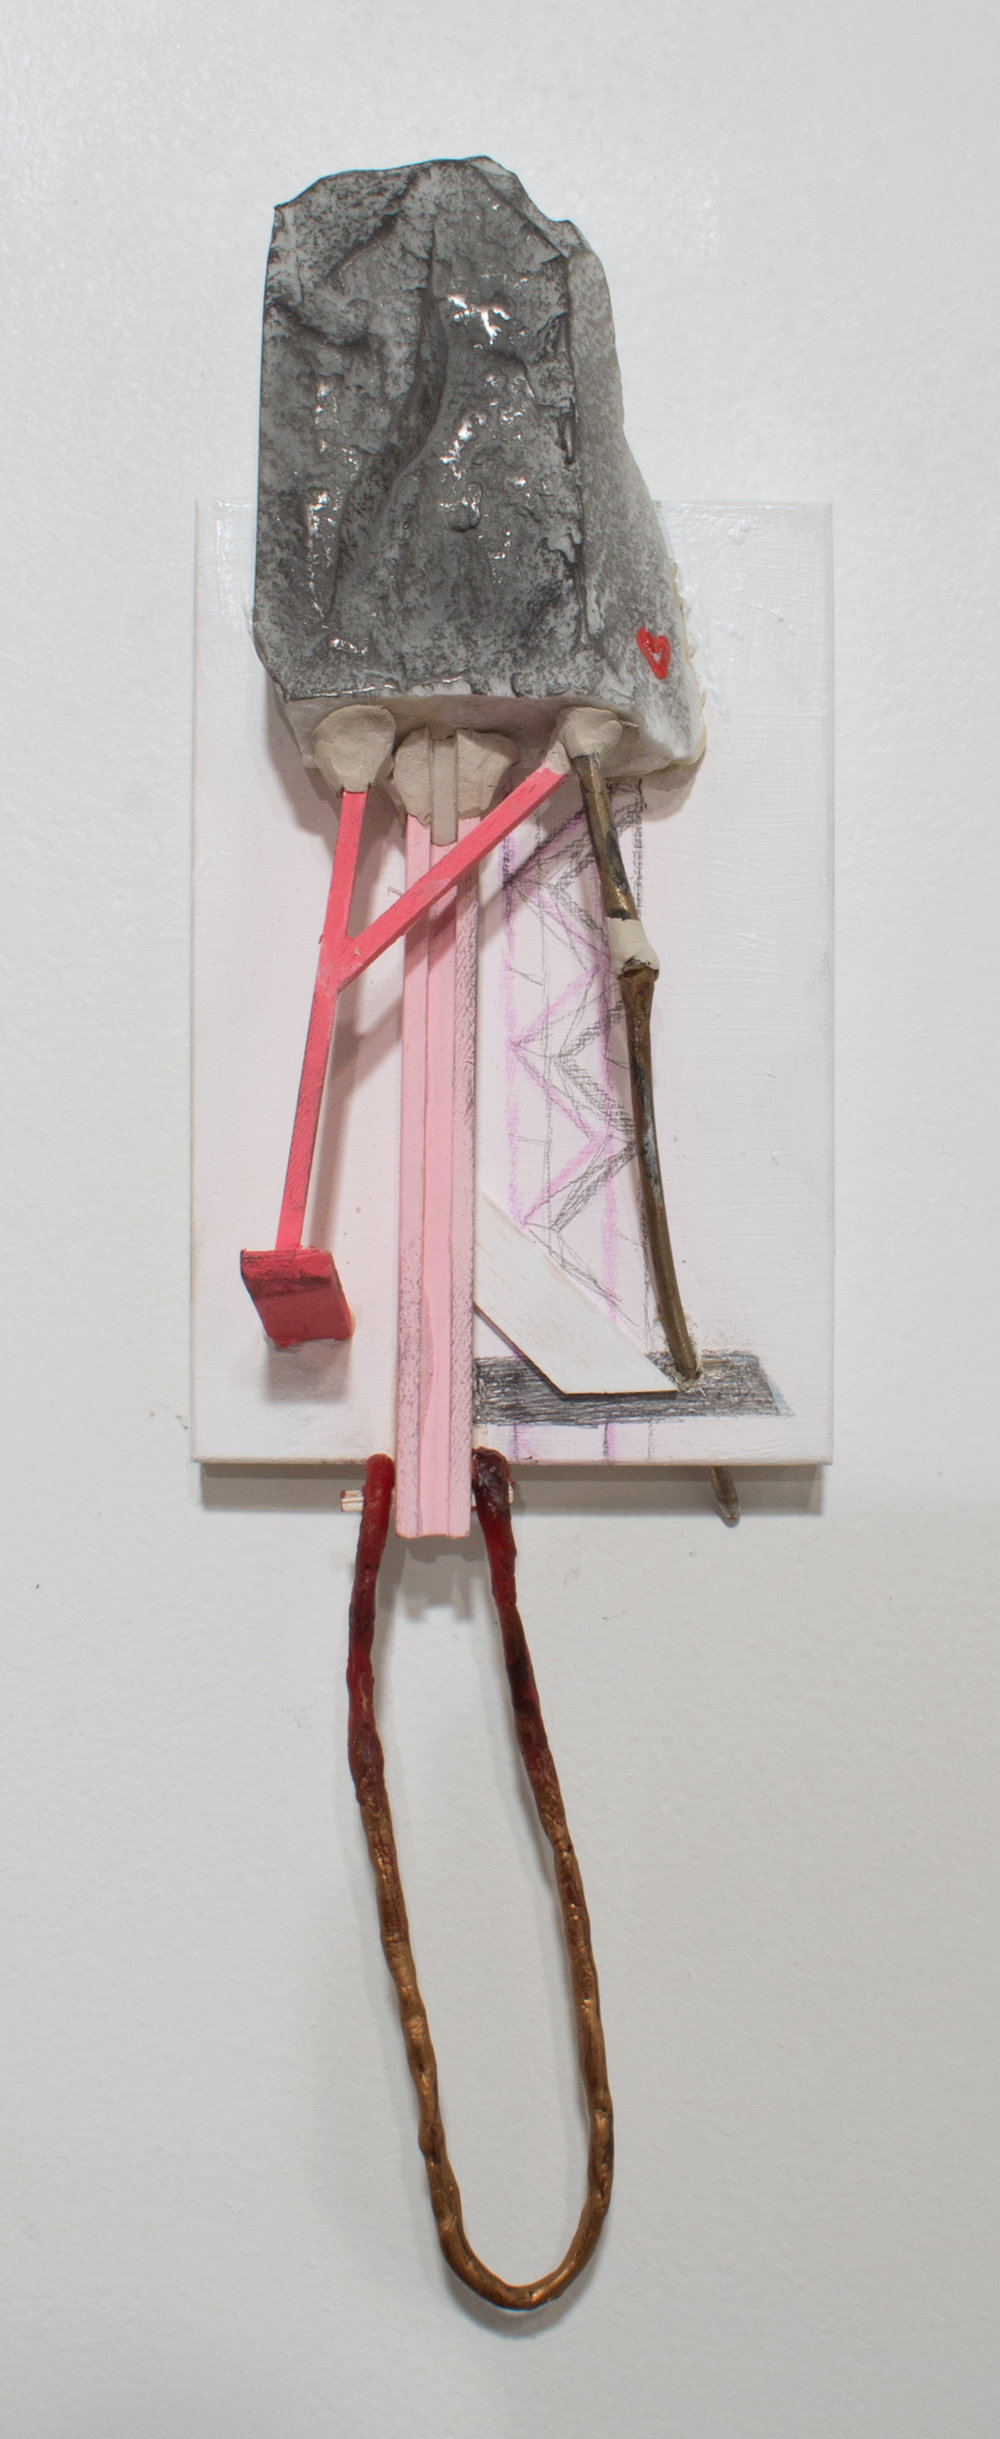 Lydia Goldbeck    Untitled,  2018  Marble, Wax, Balsa Wood, Acrylic, Graphite Powder, Pencil on Panel